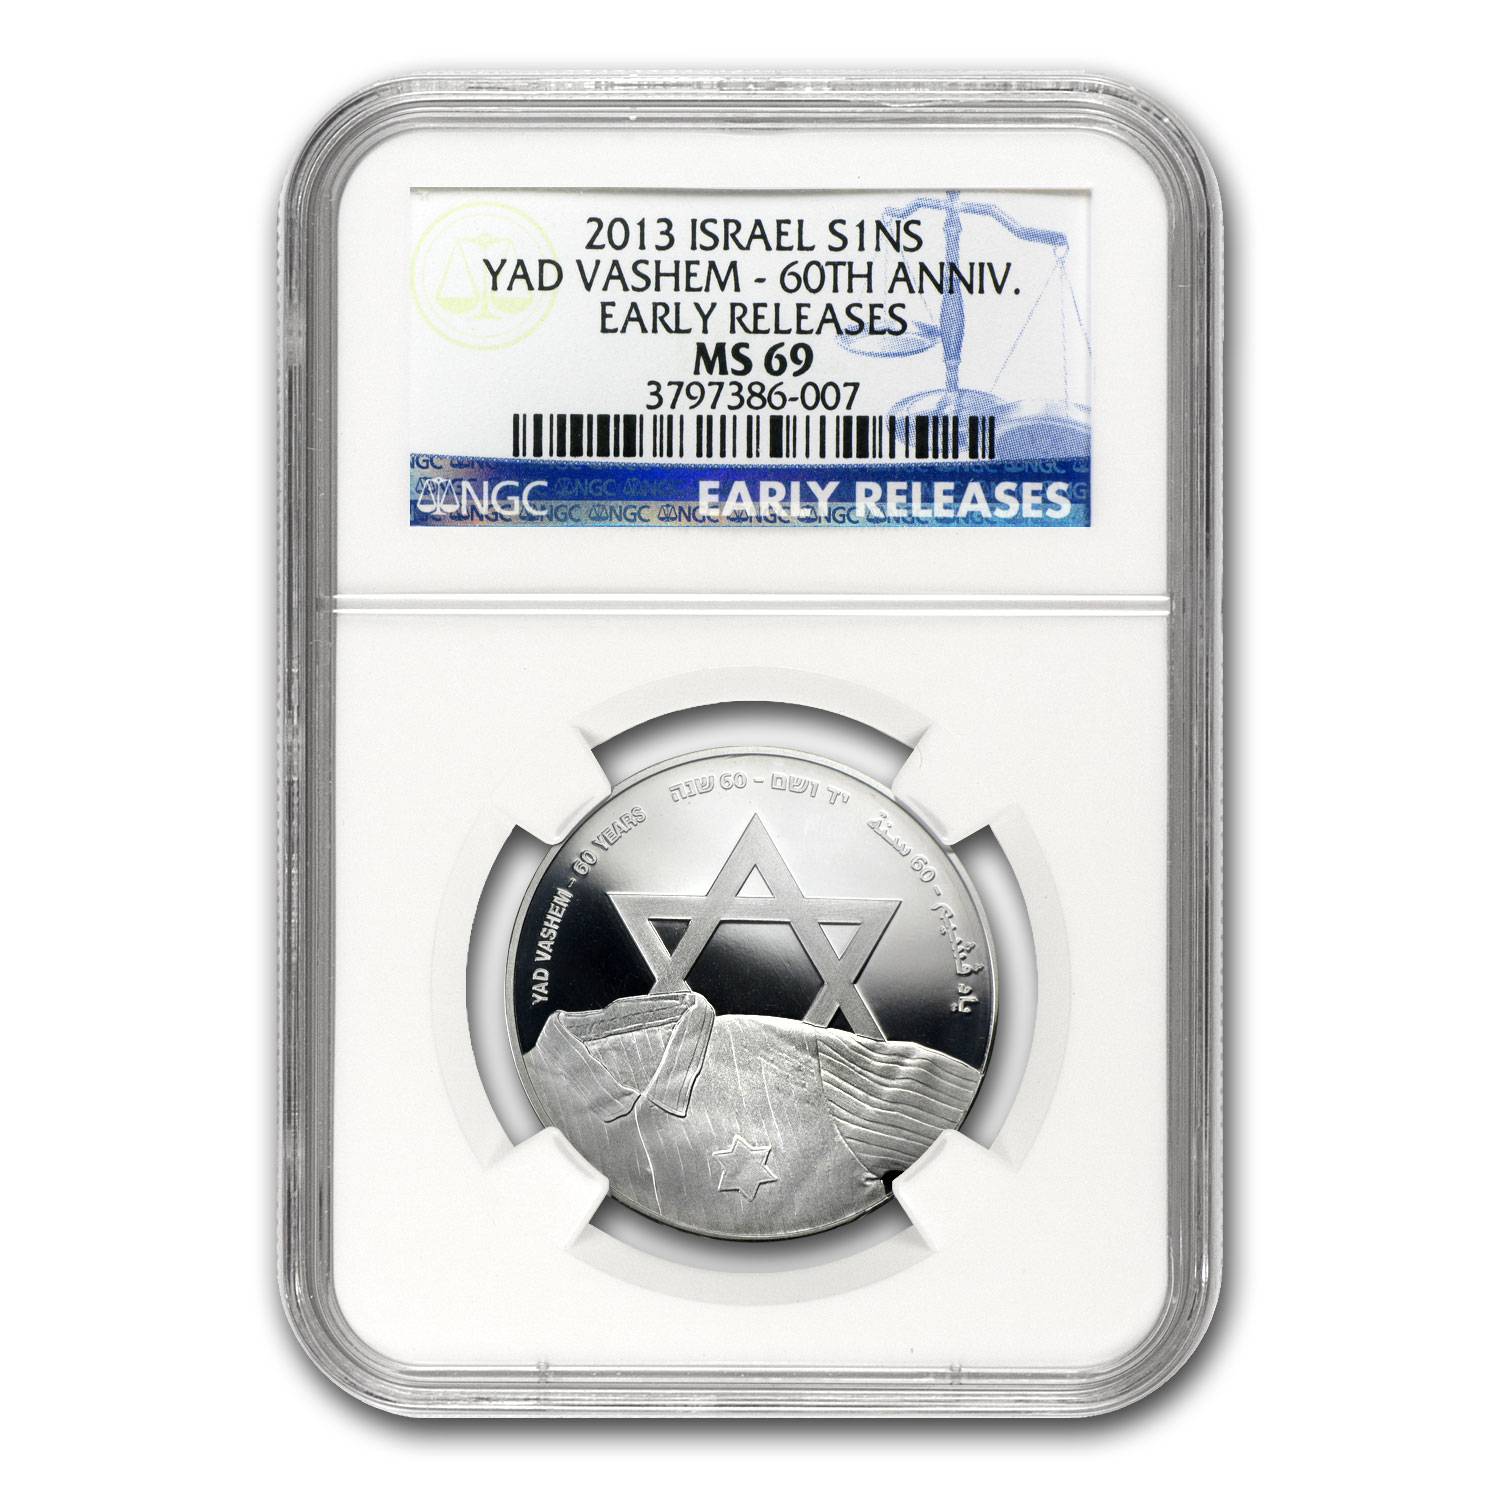 2013 Israel Yad Vashem Proof-Like Silver 1 NIS Coin MS-69 NGC ER